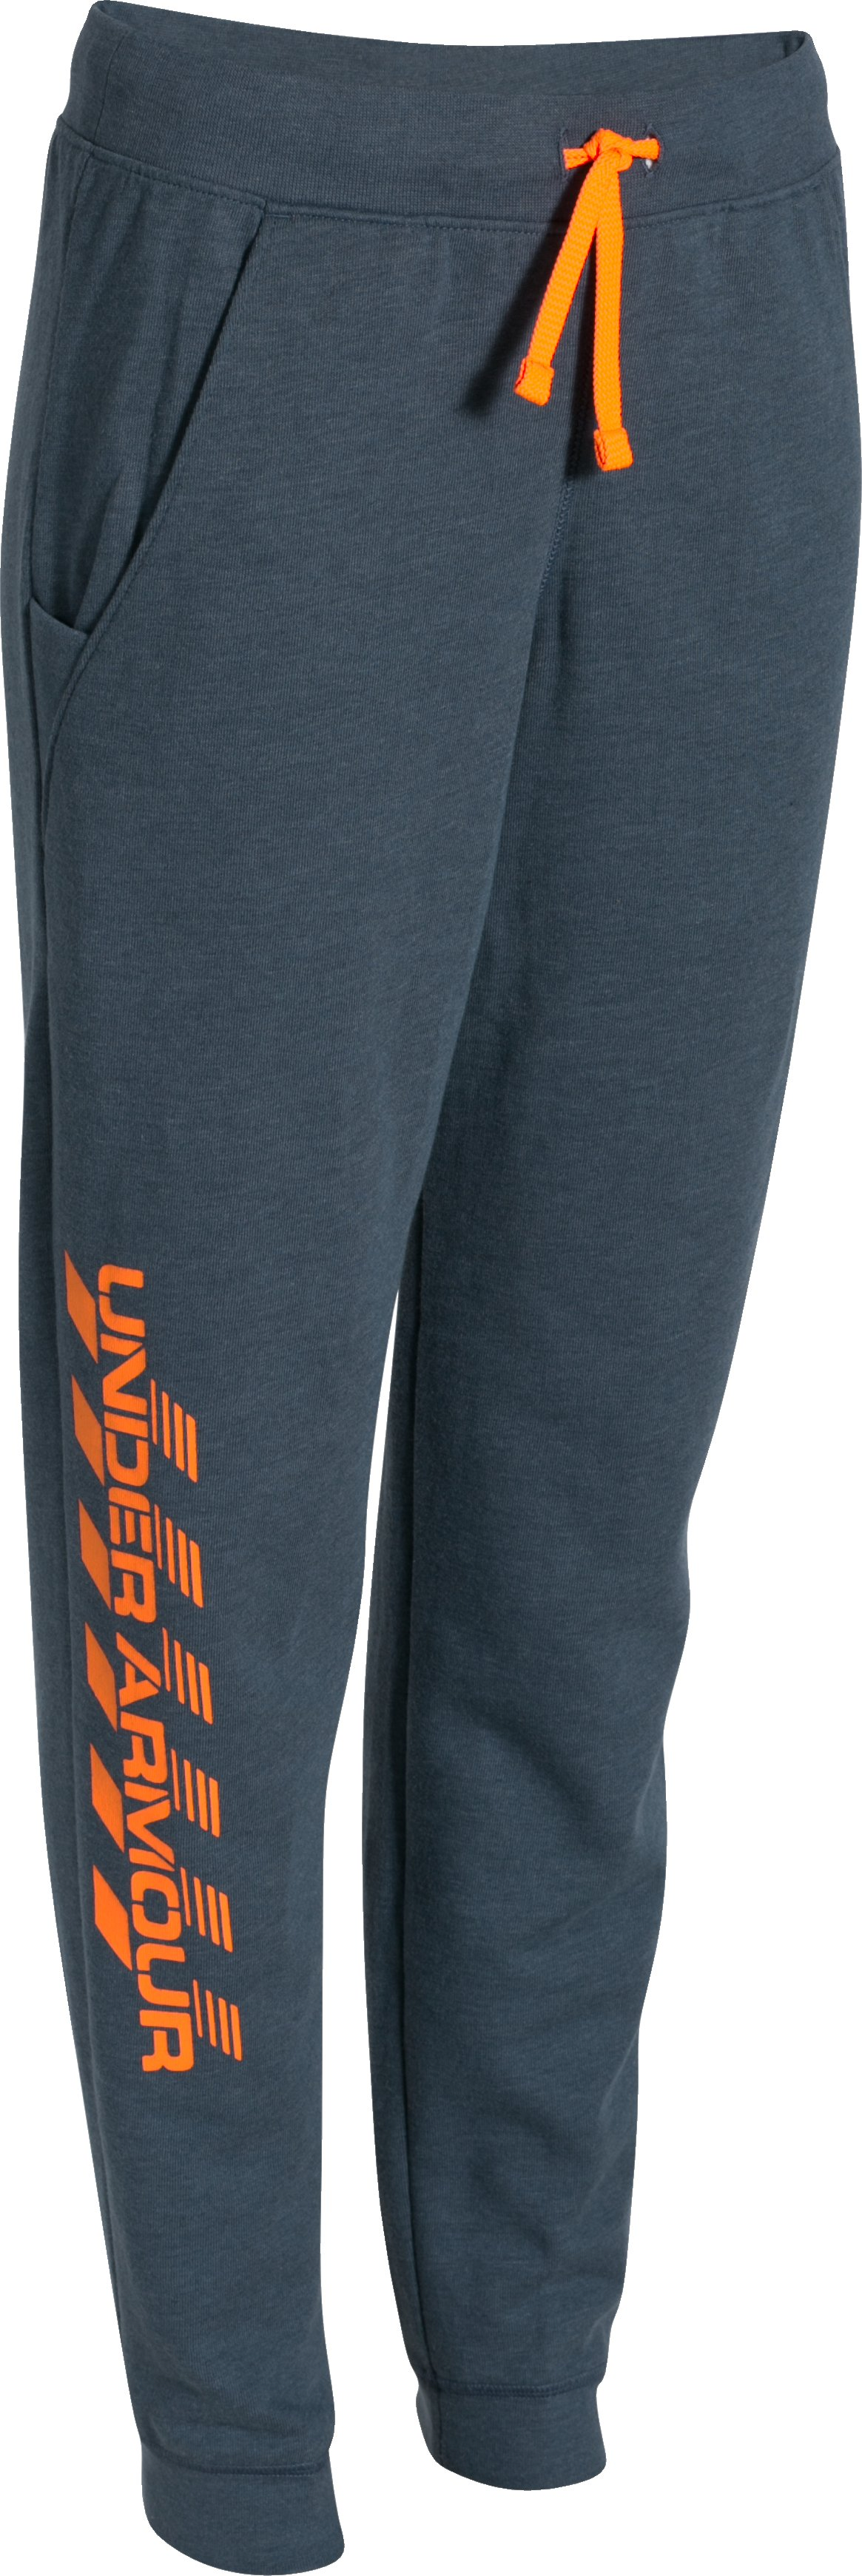 Boys' UA Surge Fleece Pants, Mechanic Blue